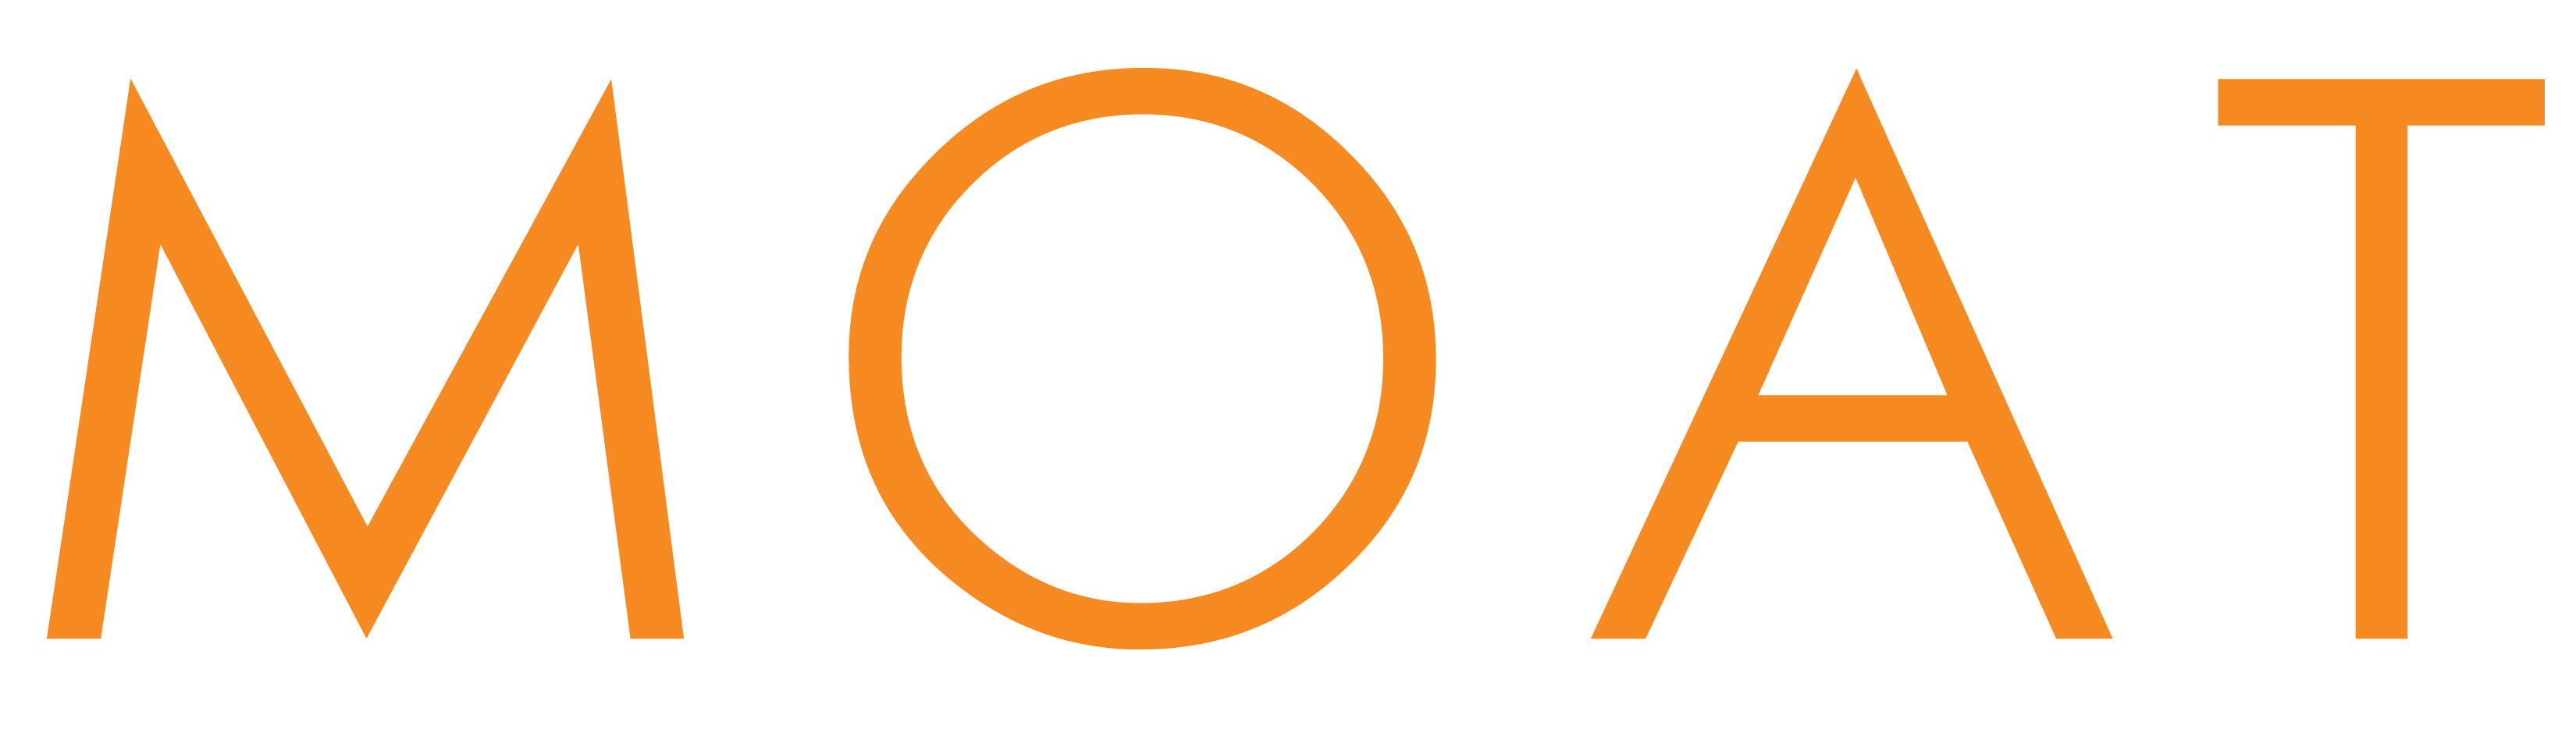 SpotX Partners With Moat to Power Viewability Targeting.